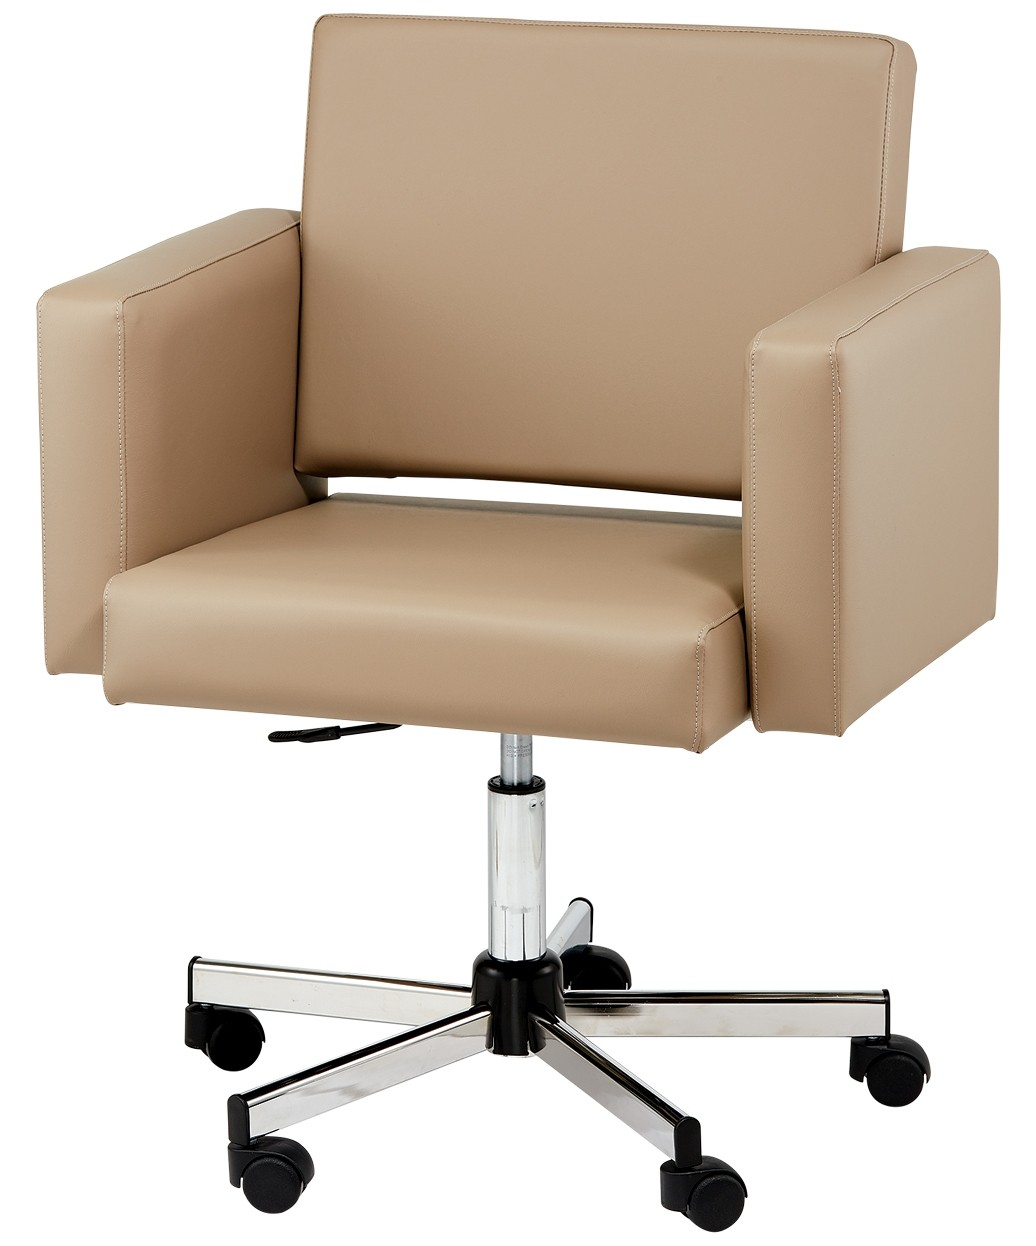 Pibbs 3492 Cosmo Desk Chair